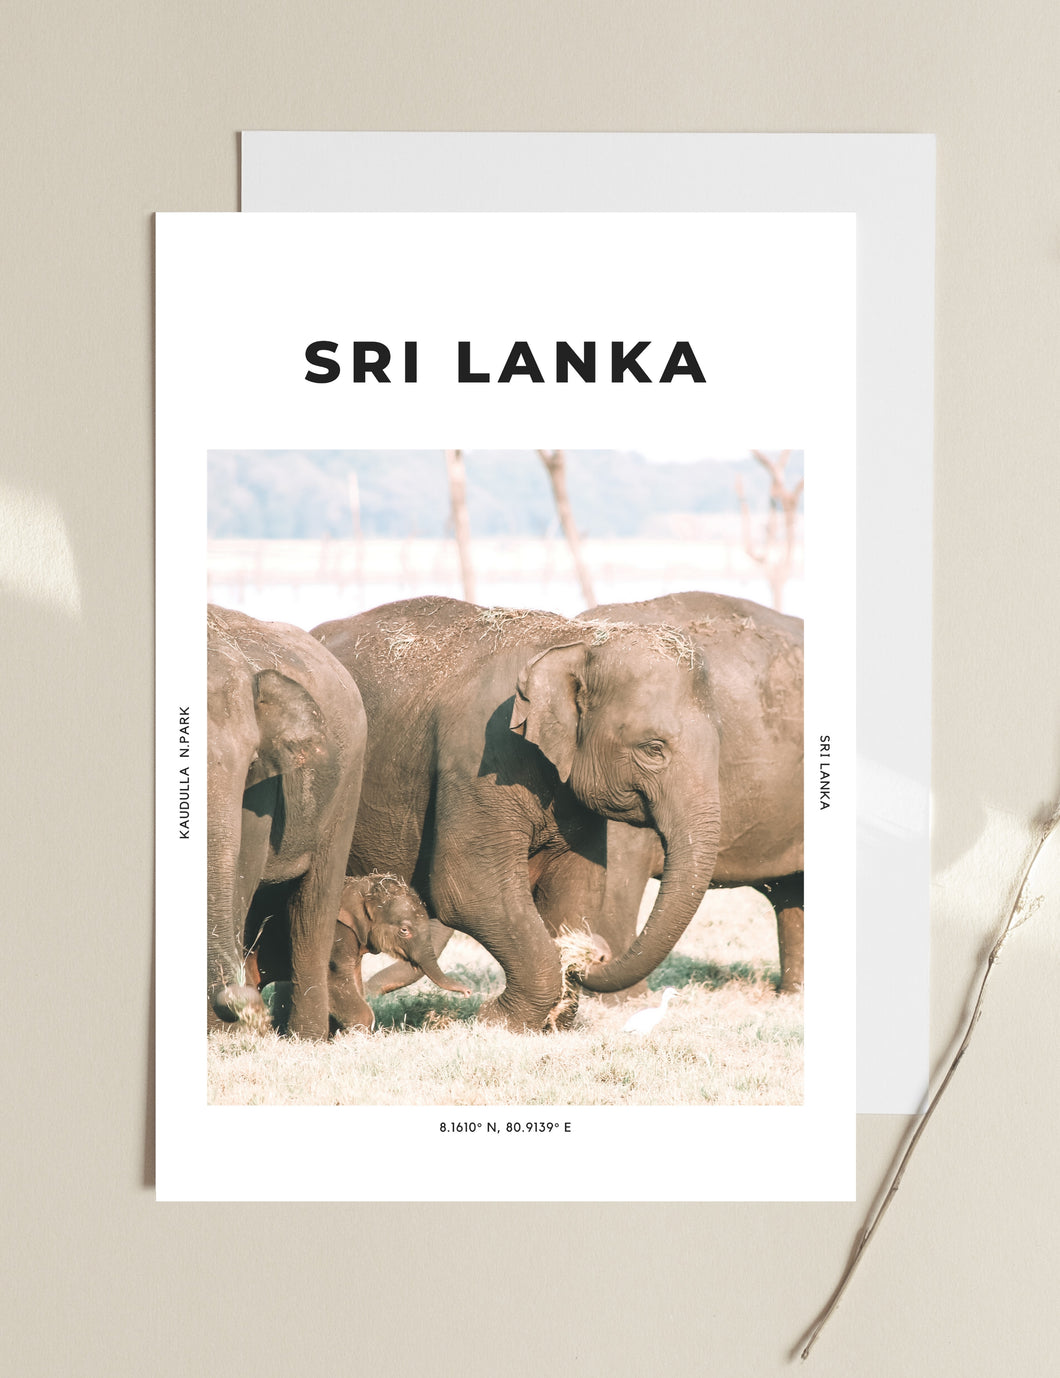 Sri Lanka 'Dream Big' Print